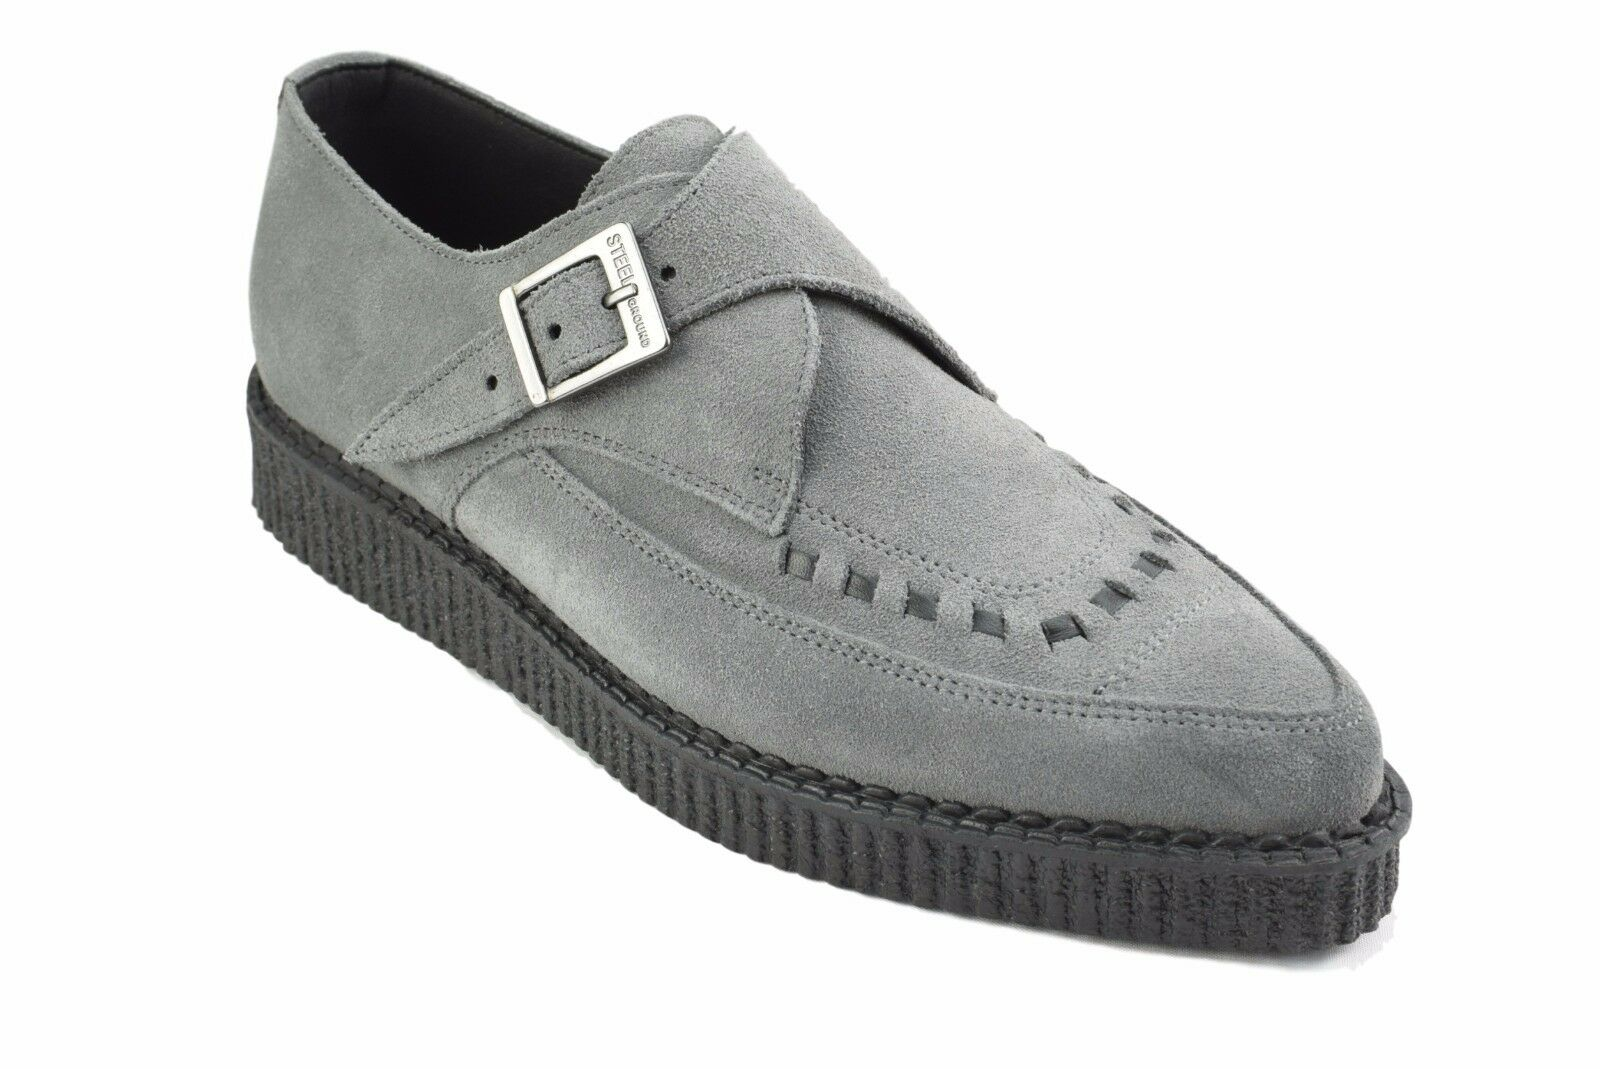 Steel Ground Schuhes Grau Suede Creepers Monk Buckle Pointed Sc200Z134